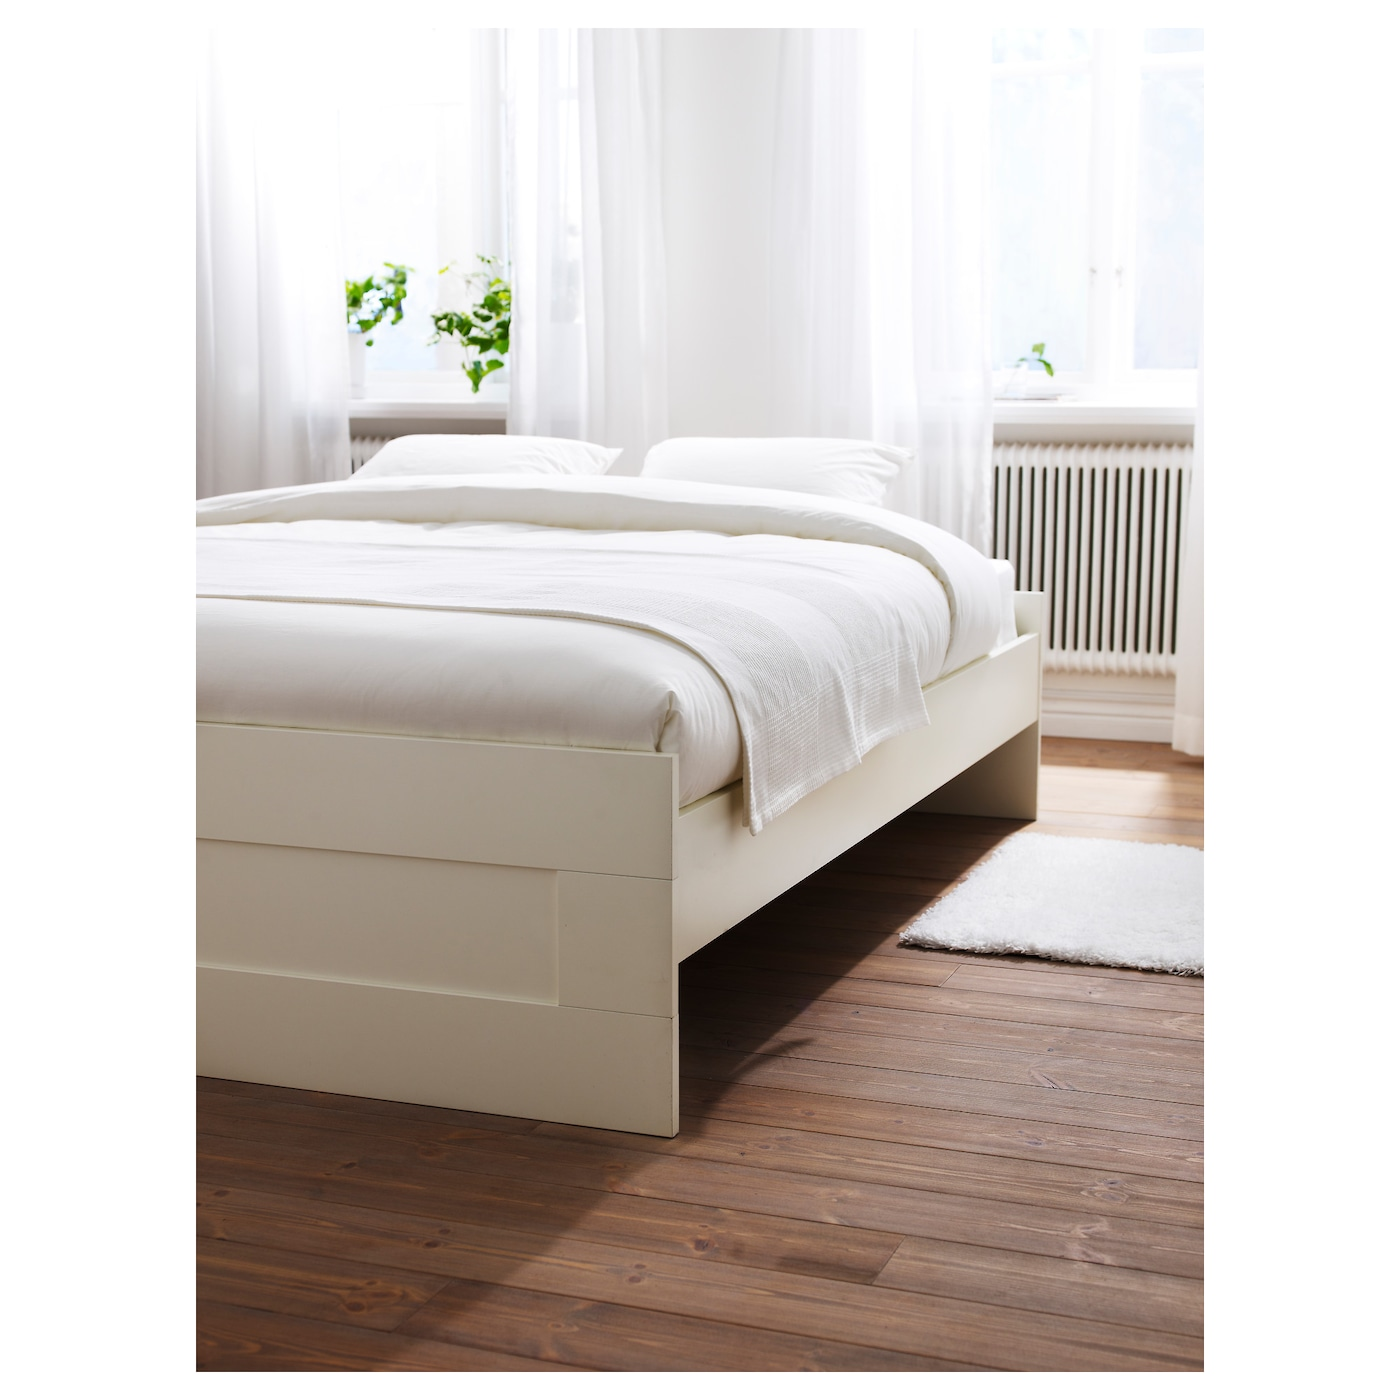 IKEA BRIMNES bed frame Adjustable bed sides allow you to use mattresses of different thicknesses.